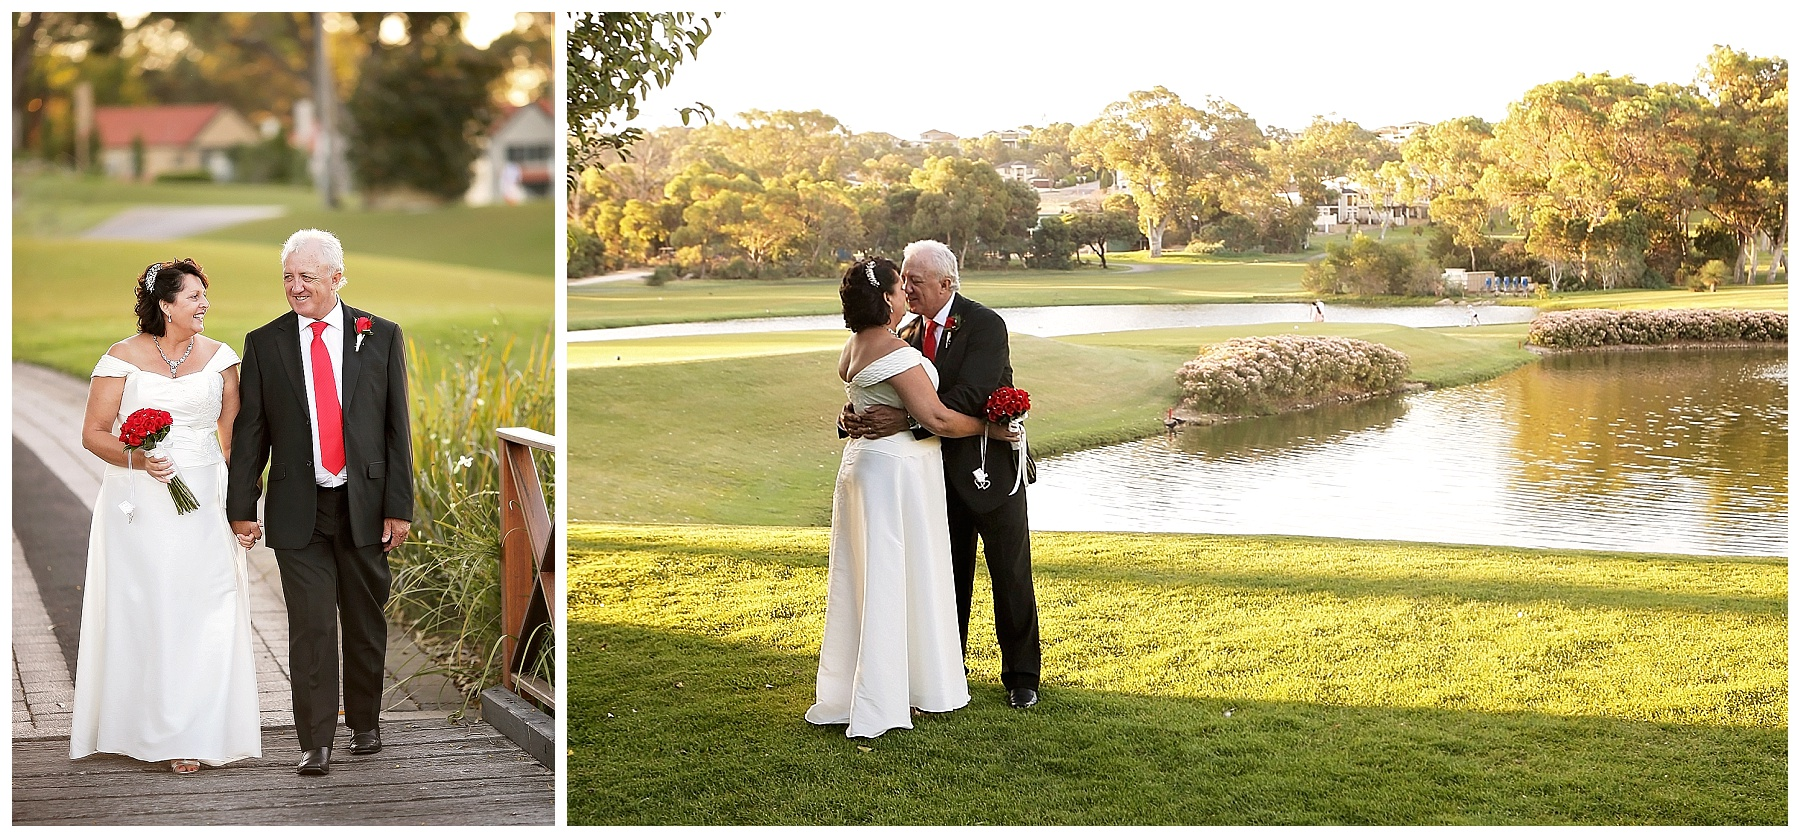 Intimate wedding Joondalup Resort